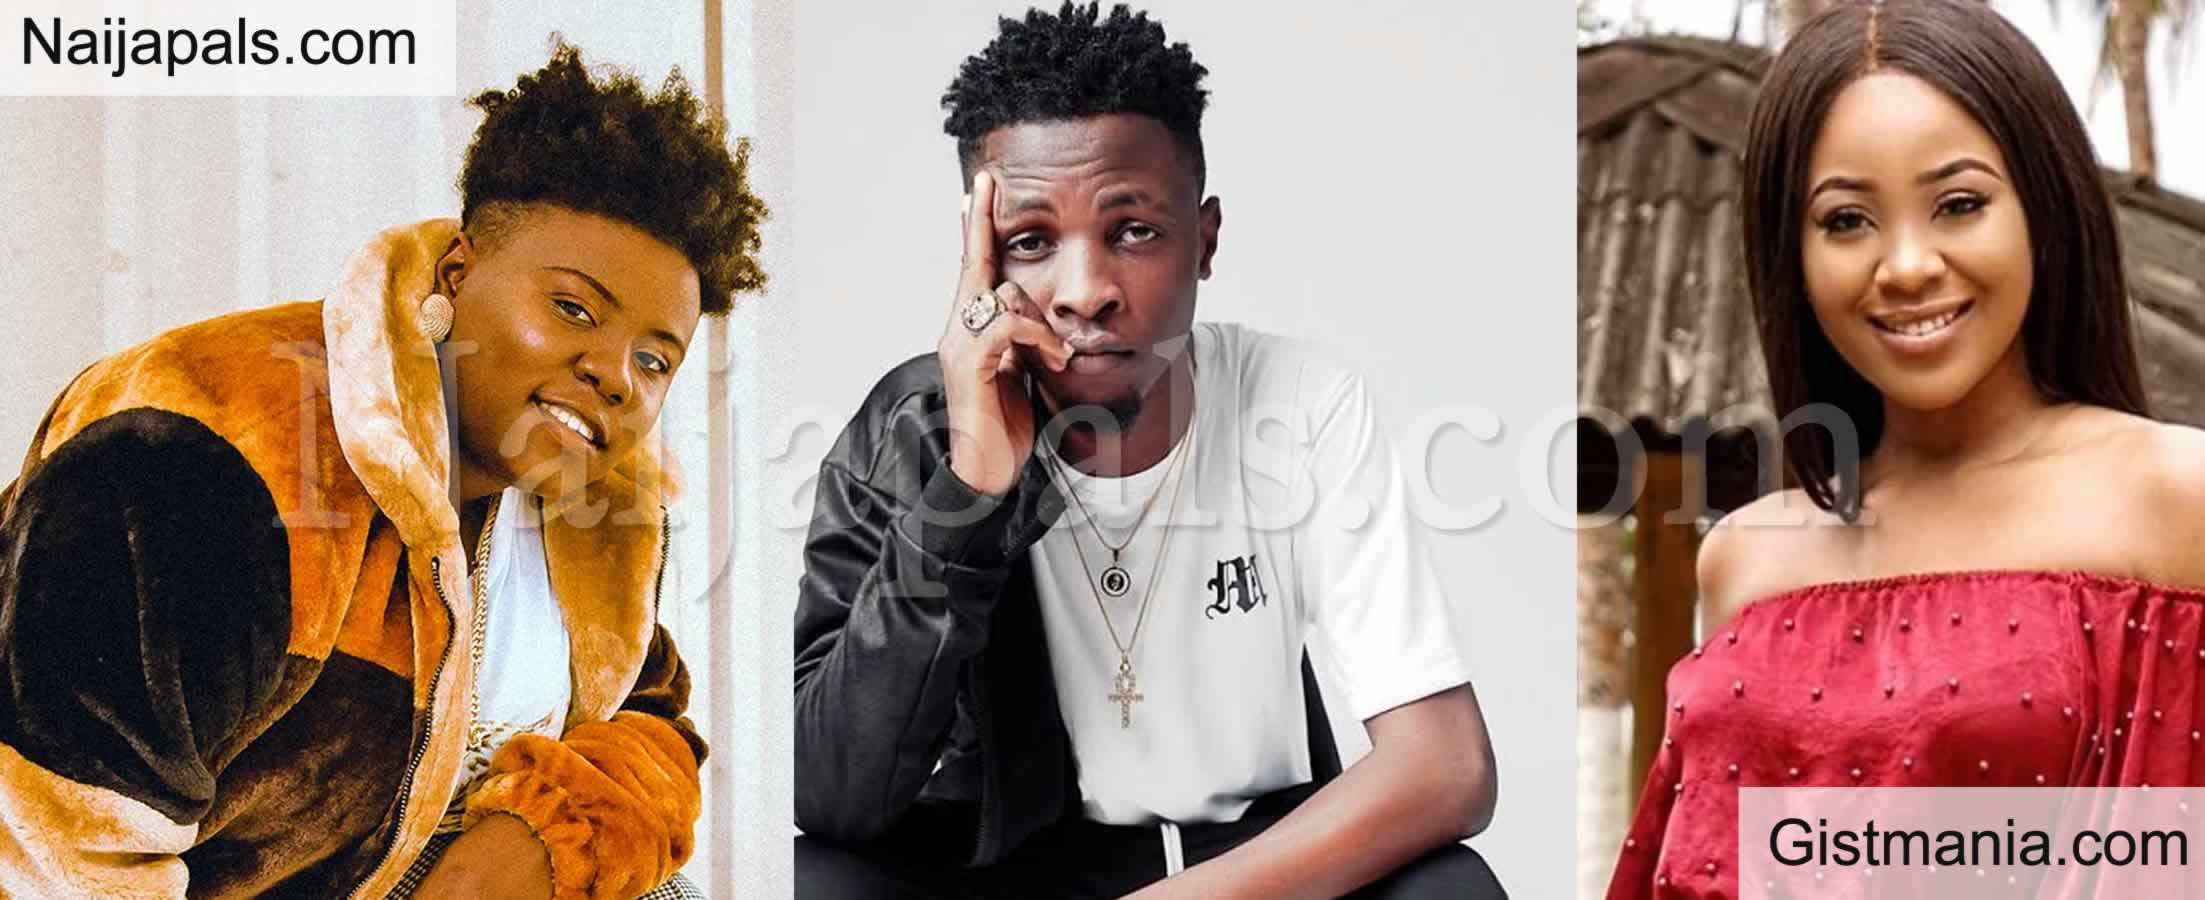 "<img alt='.' class='lazyload' data-src='https://img.gistmania.com/emot/comment.gif' /> #BBNaija: <b>Teni In Trouble After Calling Erica ""Omo Igbo"" While Campaigning For Laycon</b>"